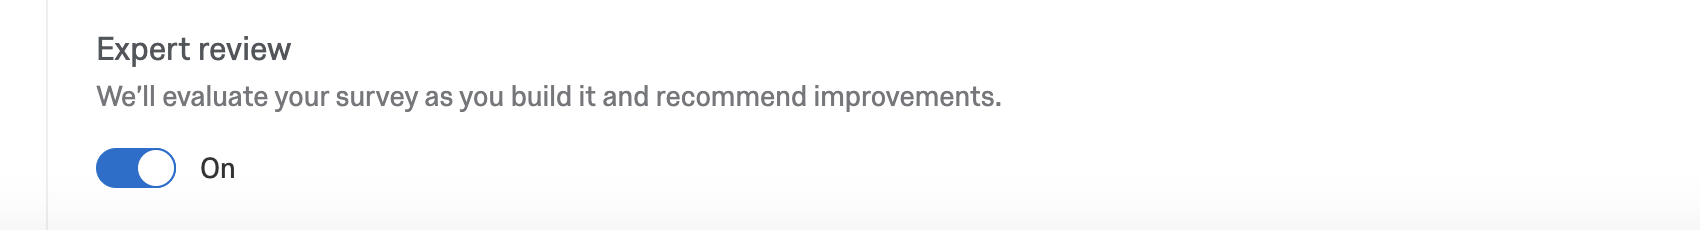 Expert review toggle